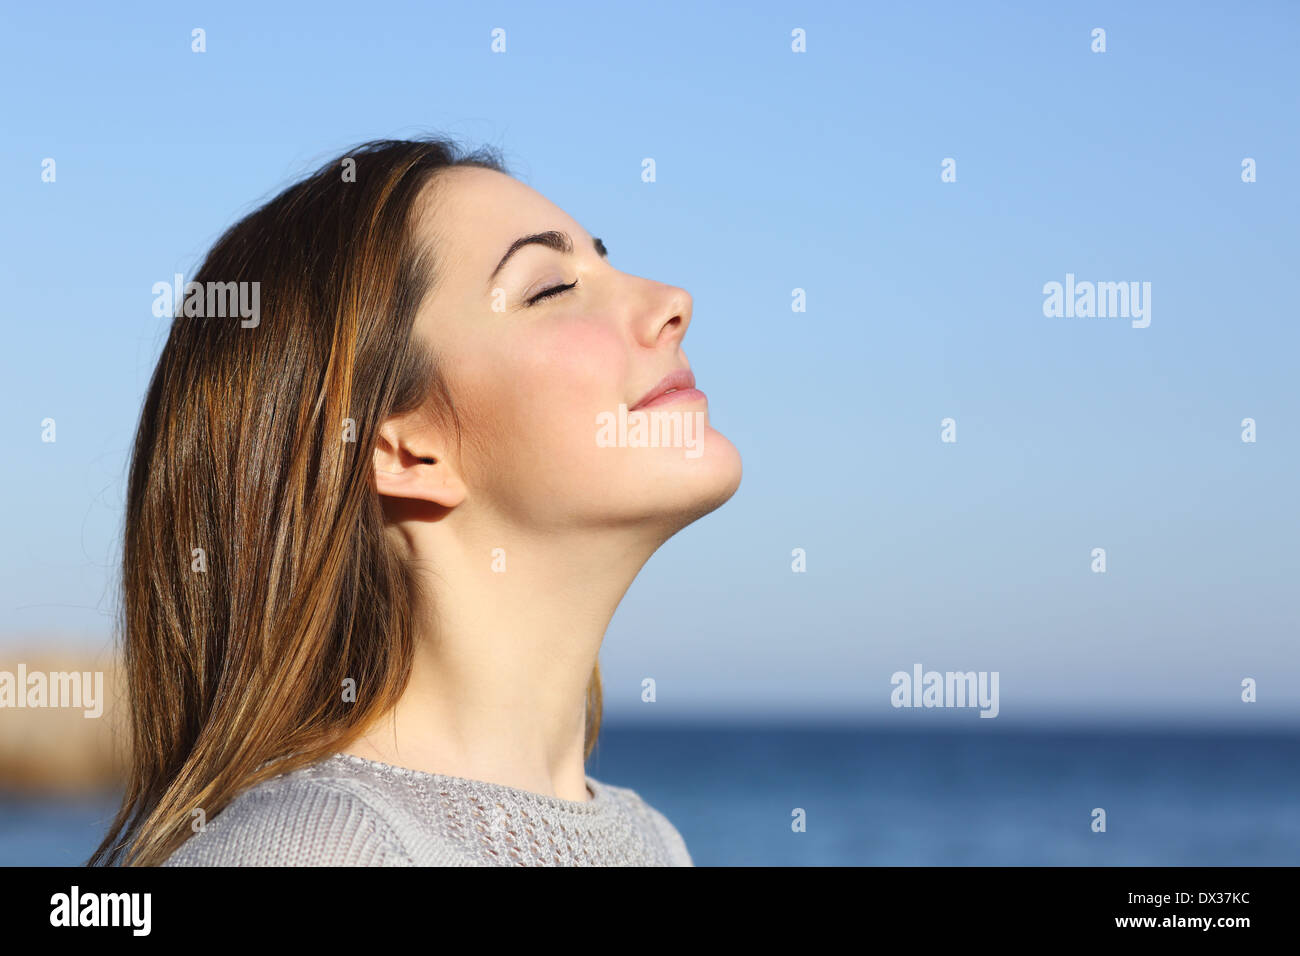 Woman profile portrait breathing deep fresh air on the beach with the ocean in the background - Stock Image